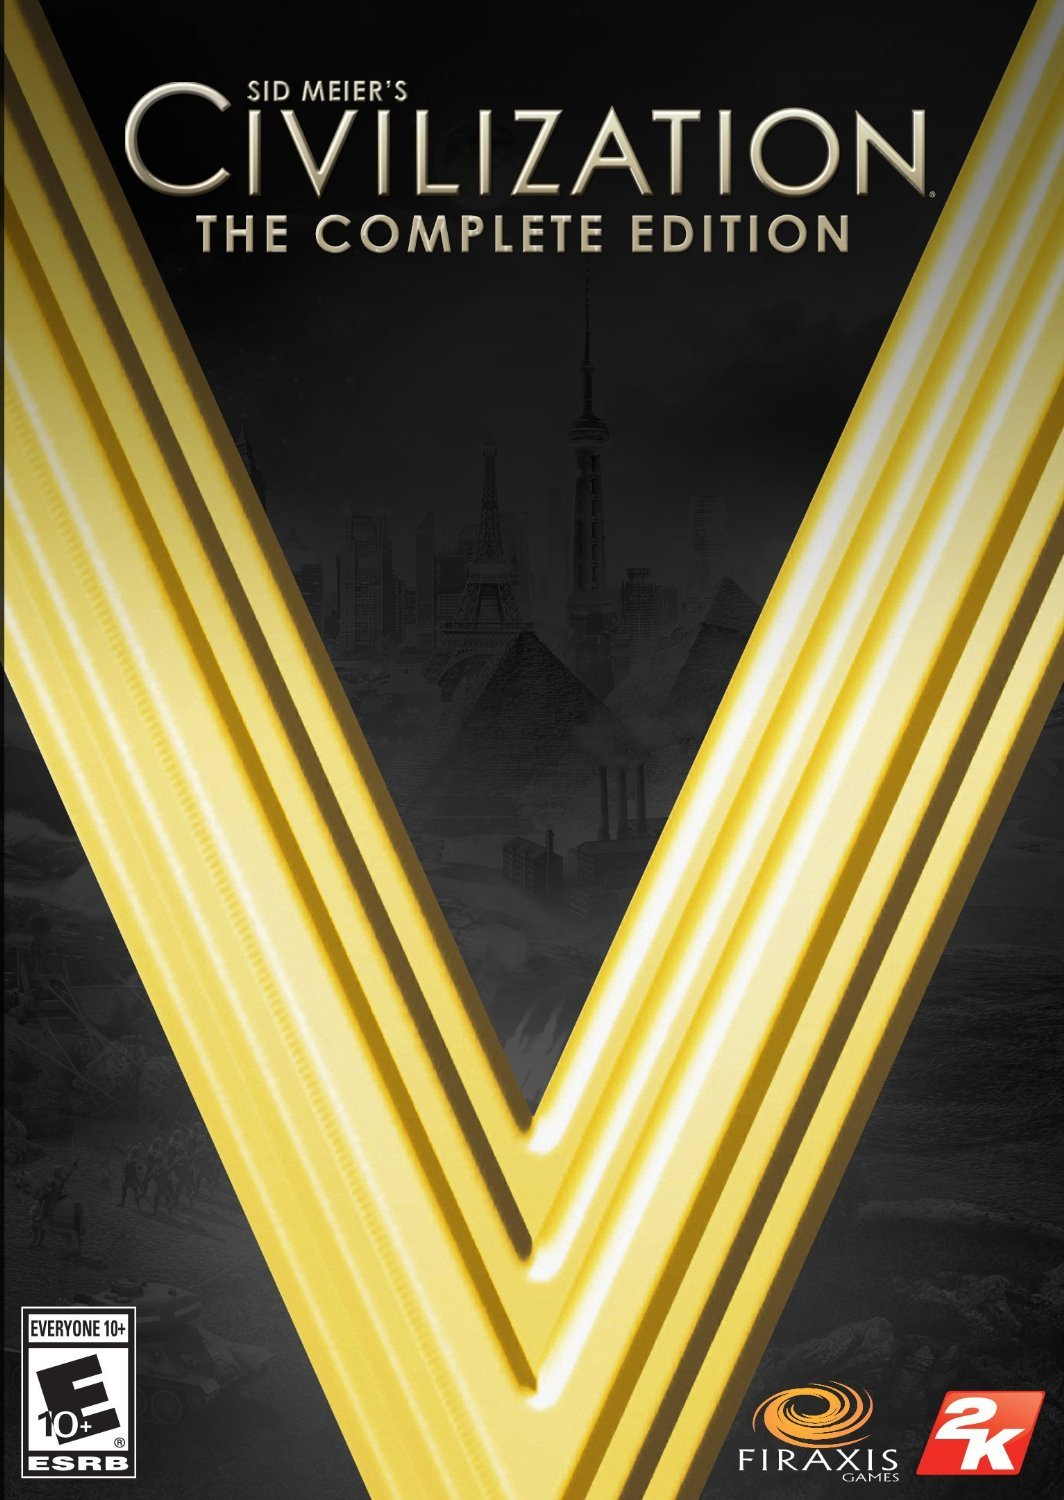 Sid Meier's Civilization V: The Complete Edition Windows PC/Mac Game Download Steam CD-Key Global